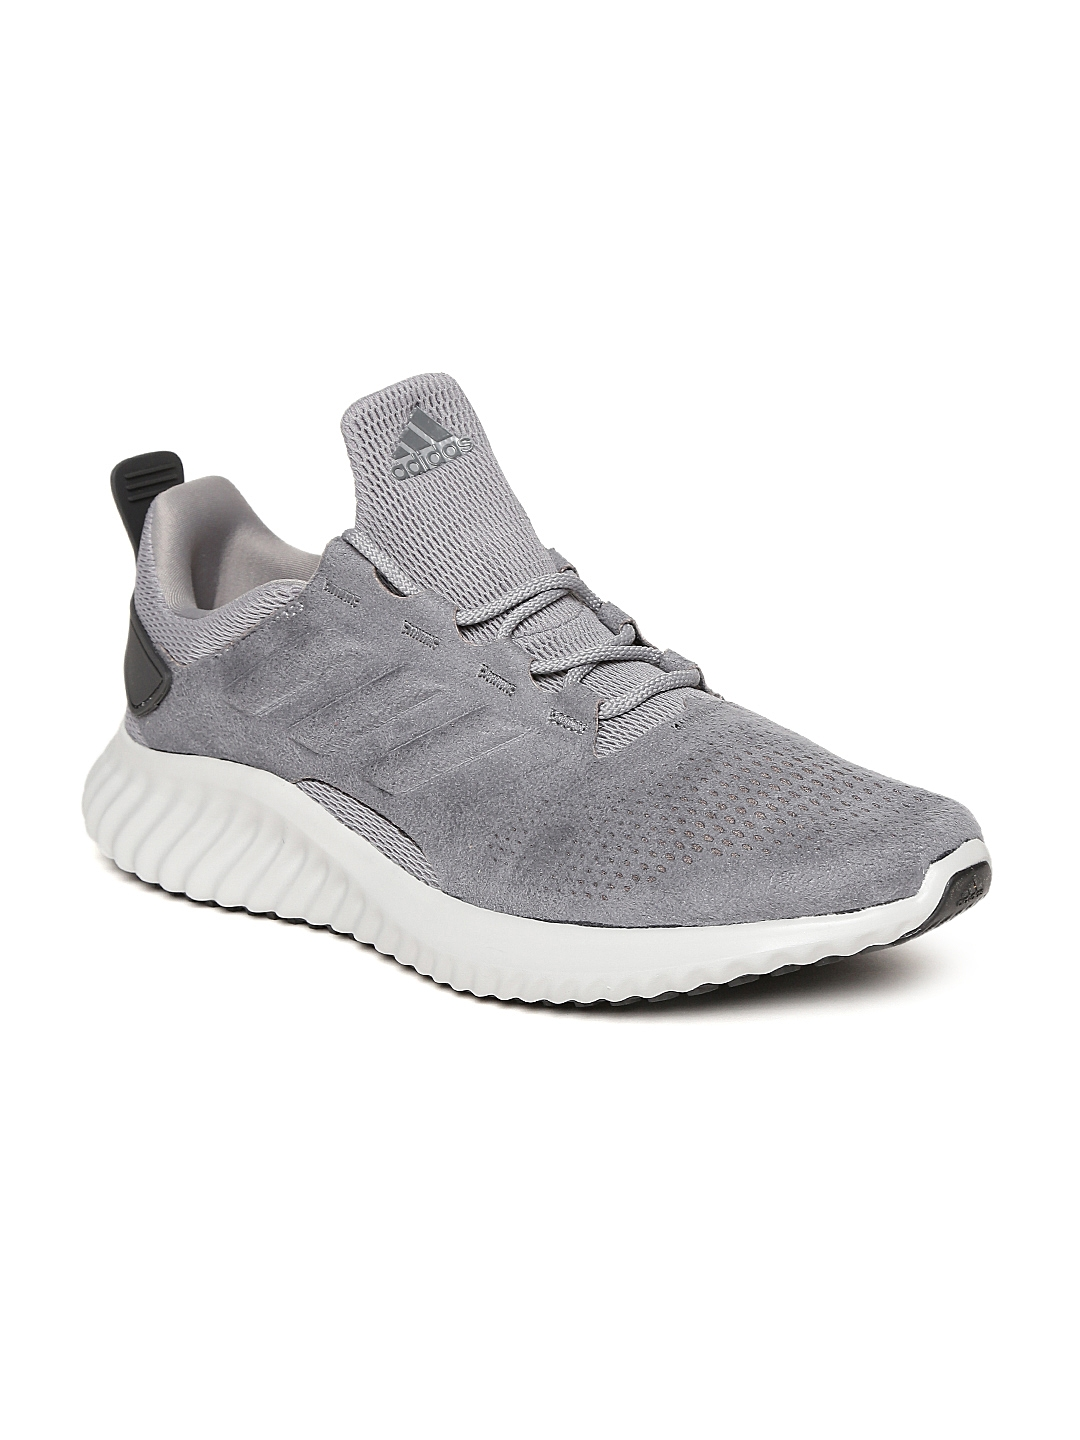 dd3b26d82 Buy ADIDAS Men Grey Alphabounce CR Suede Running Shoes - Sports ...